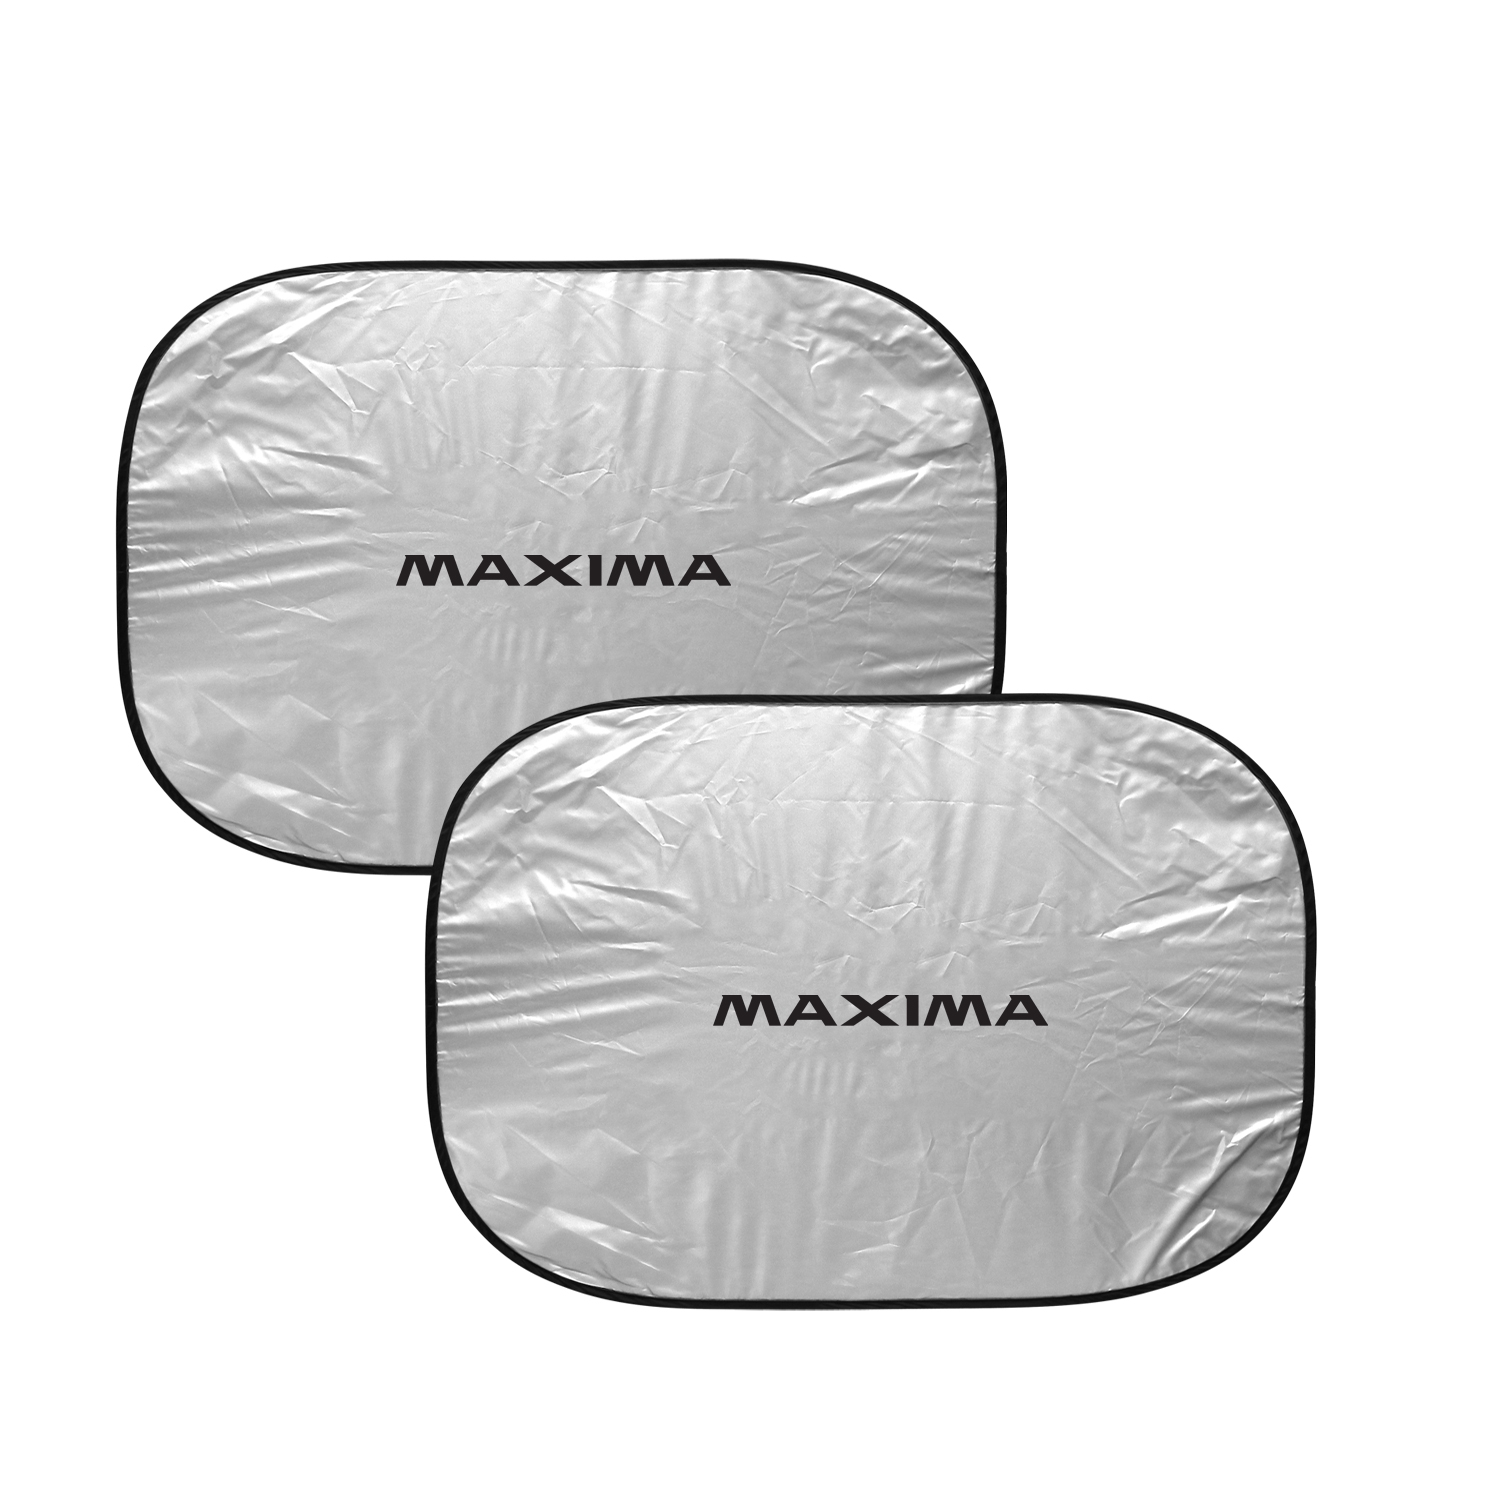 Nissan Maxima Dual Panels Easy Folding Windshield Sun Shade for Cars and Small SUVs